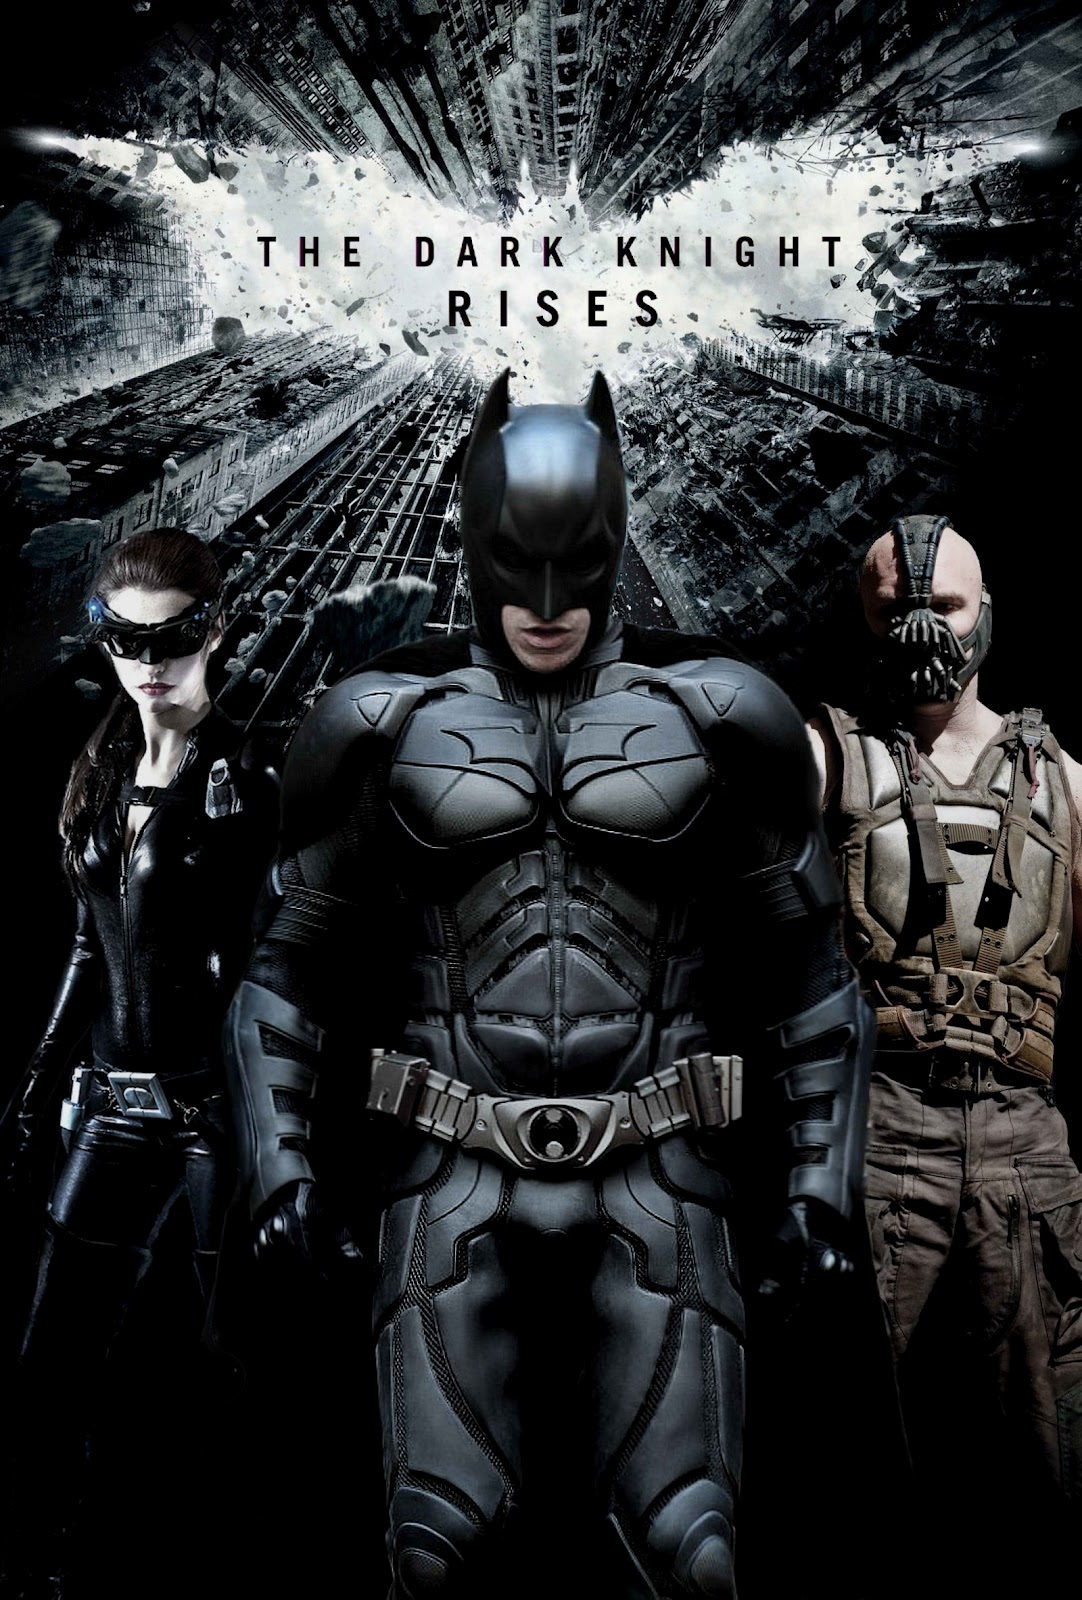 The Dark Knight Rises | Euro Palace Casino Blog